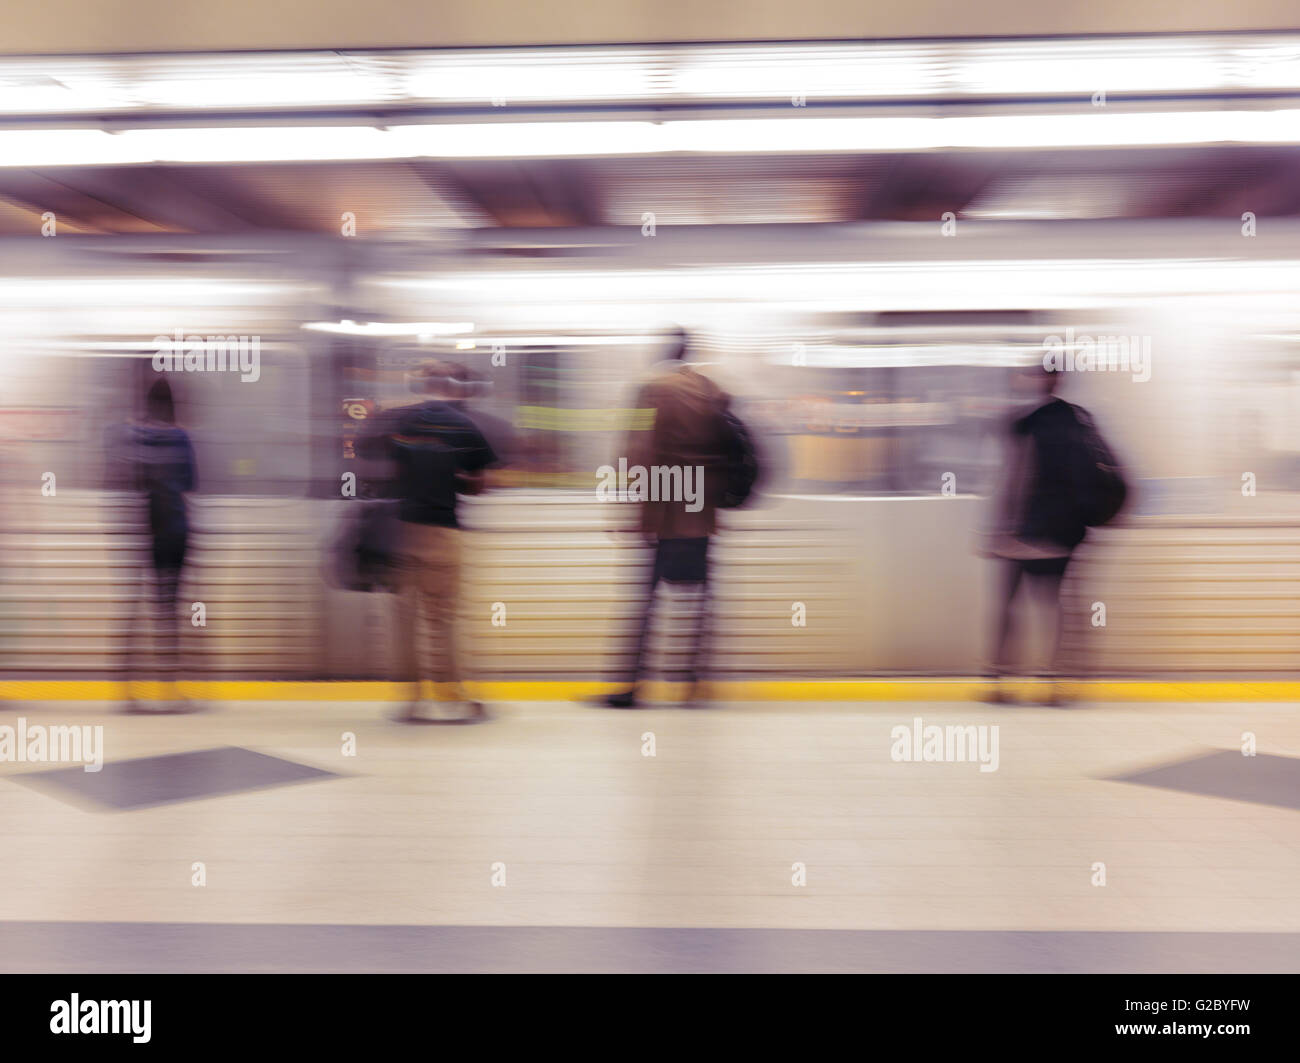 People standing on a subway platform waiting for the arriving train, Toronto, Ontario Province, Canada - Stock Image